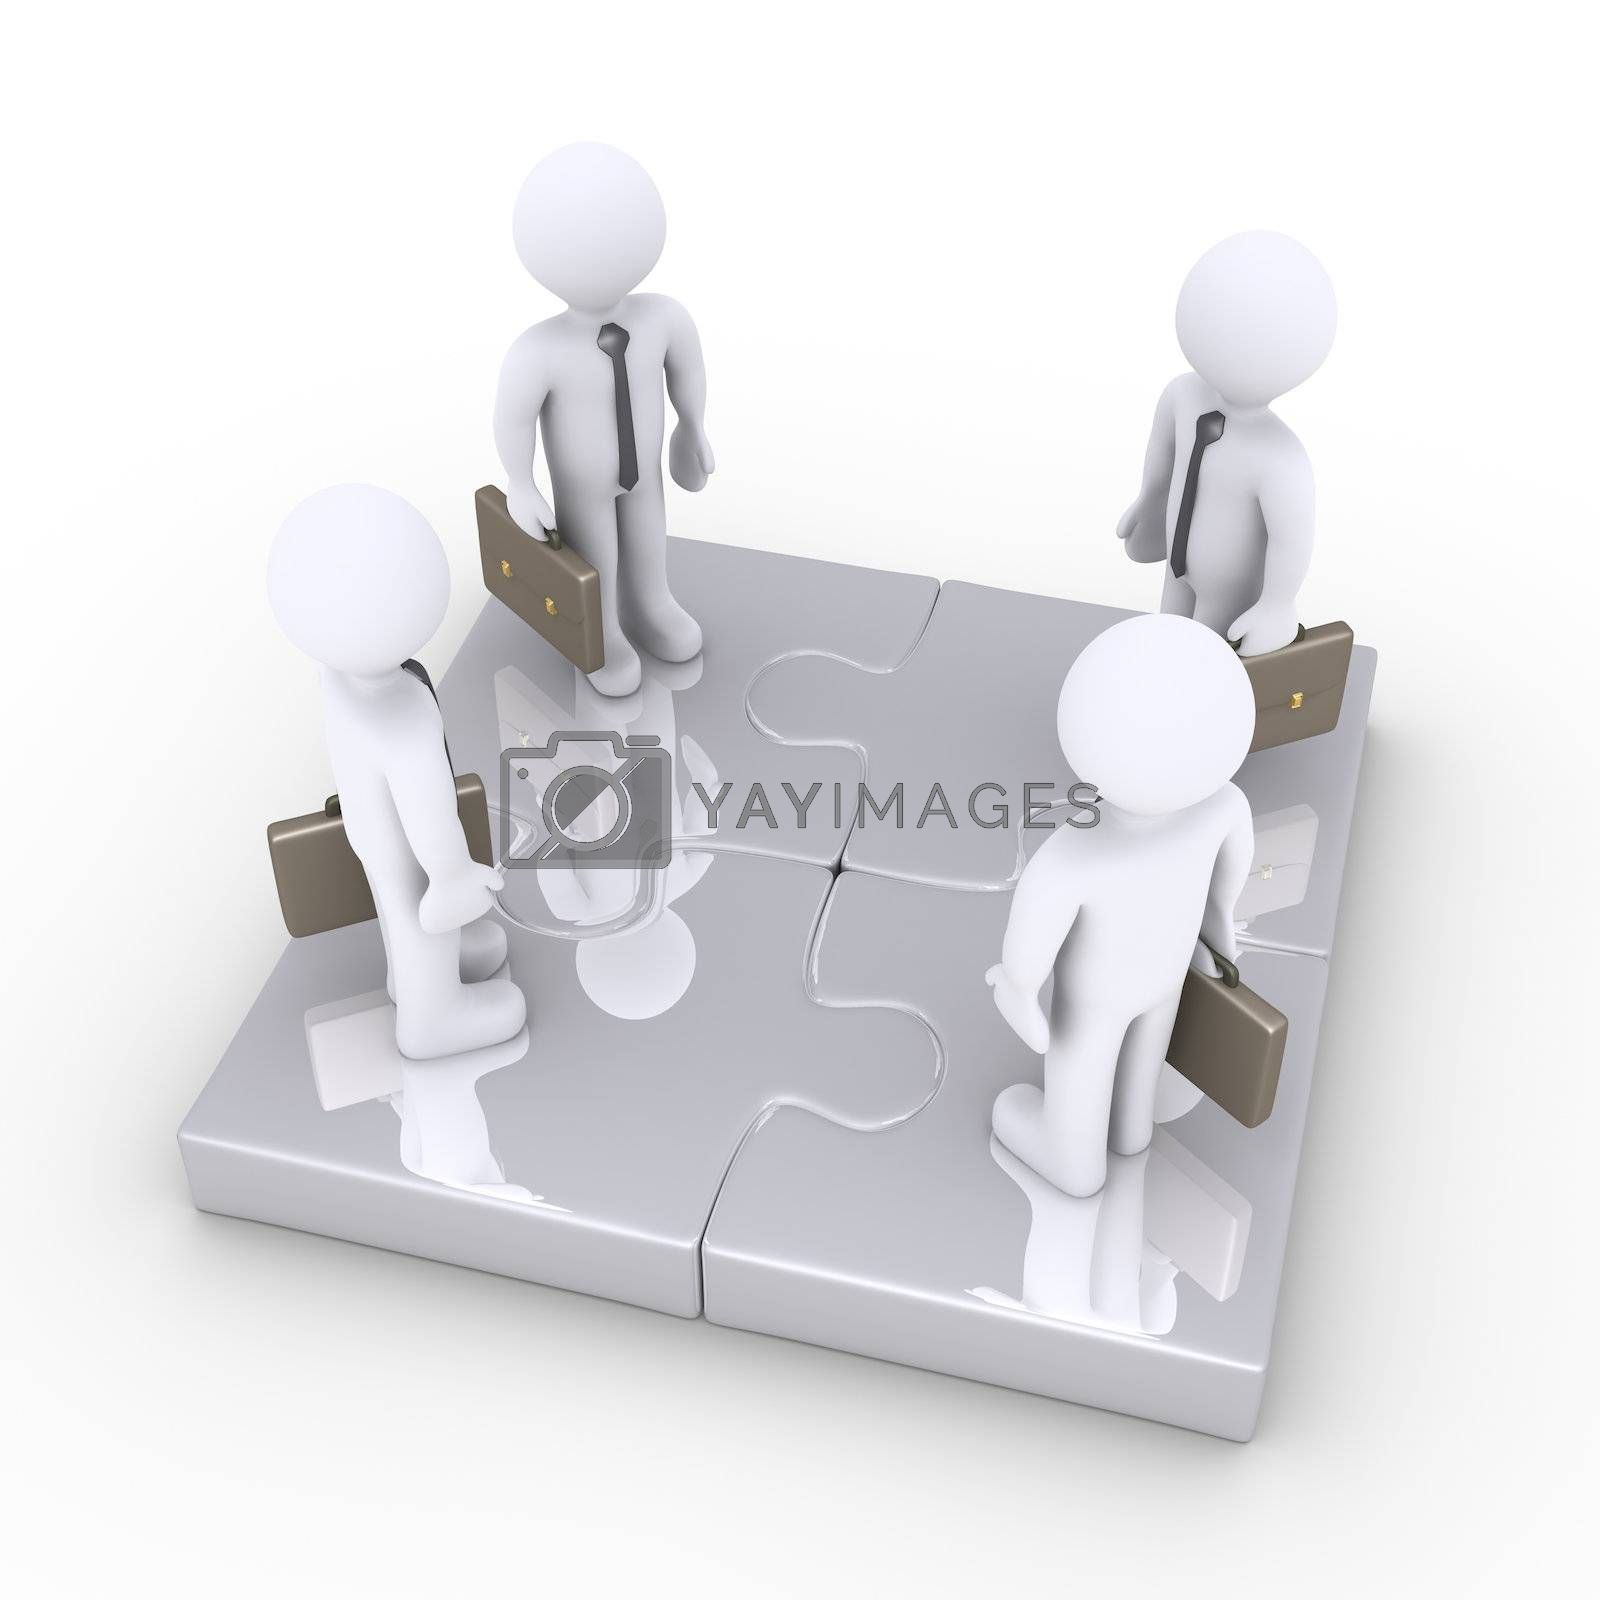 Four 3d businessmen are standing on connected puzzle pieces